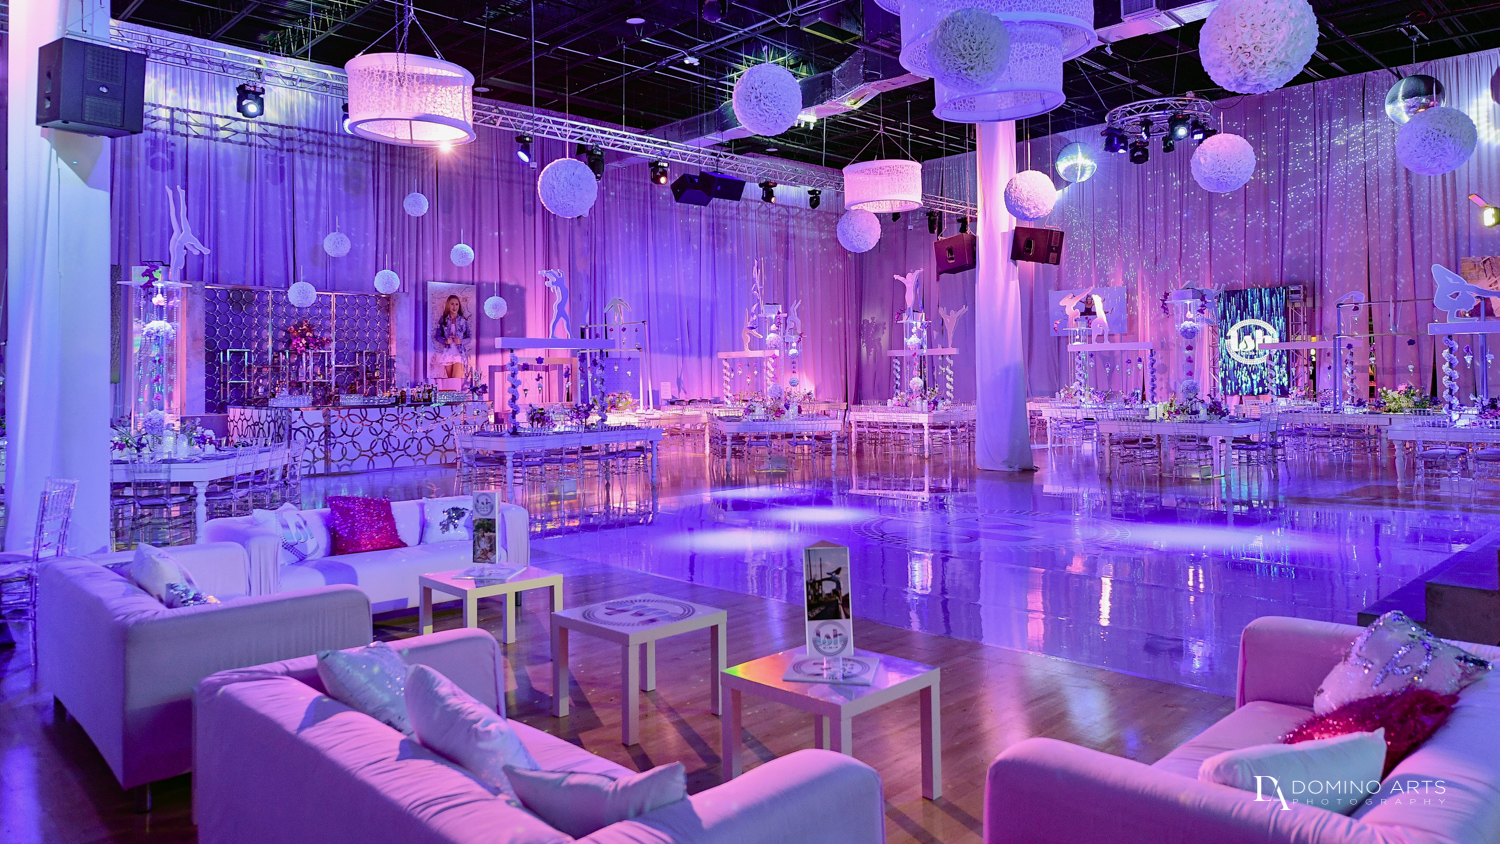 Best decor at Gymnastics Theme Bat Mitzvah Photography at Xtreme Action Park by Domino Arts